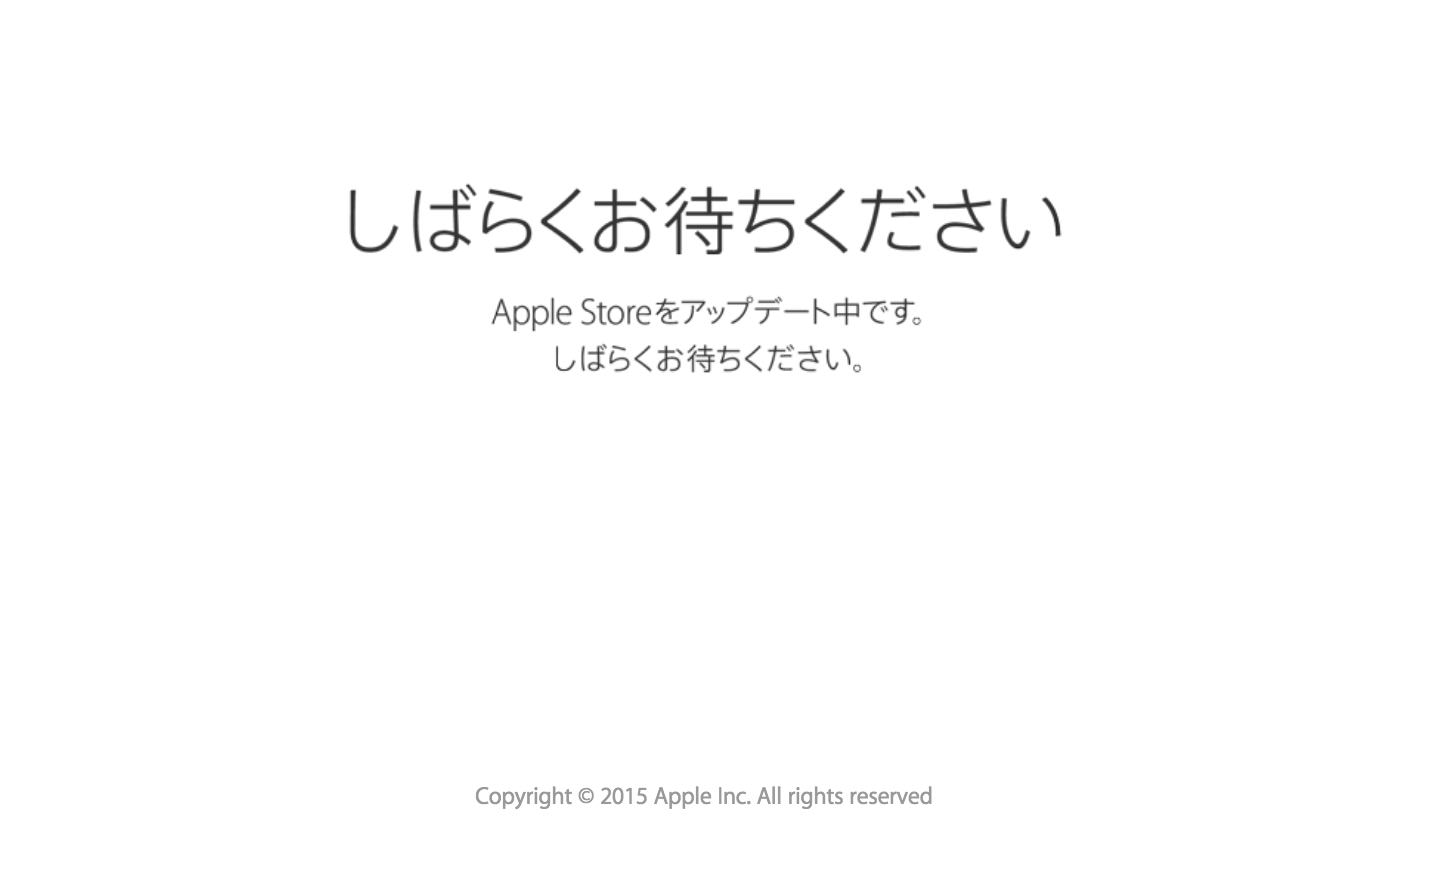 Apple watch macbook atarasii hatsubai majiyabe